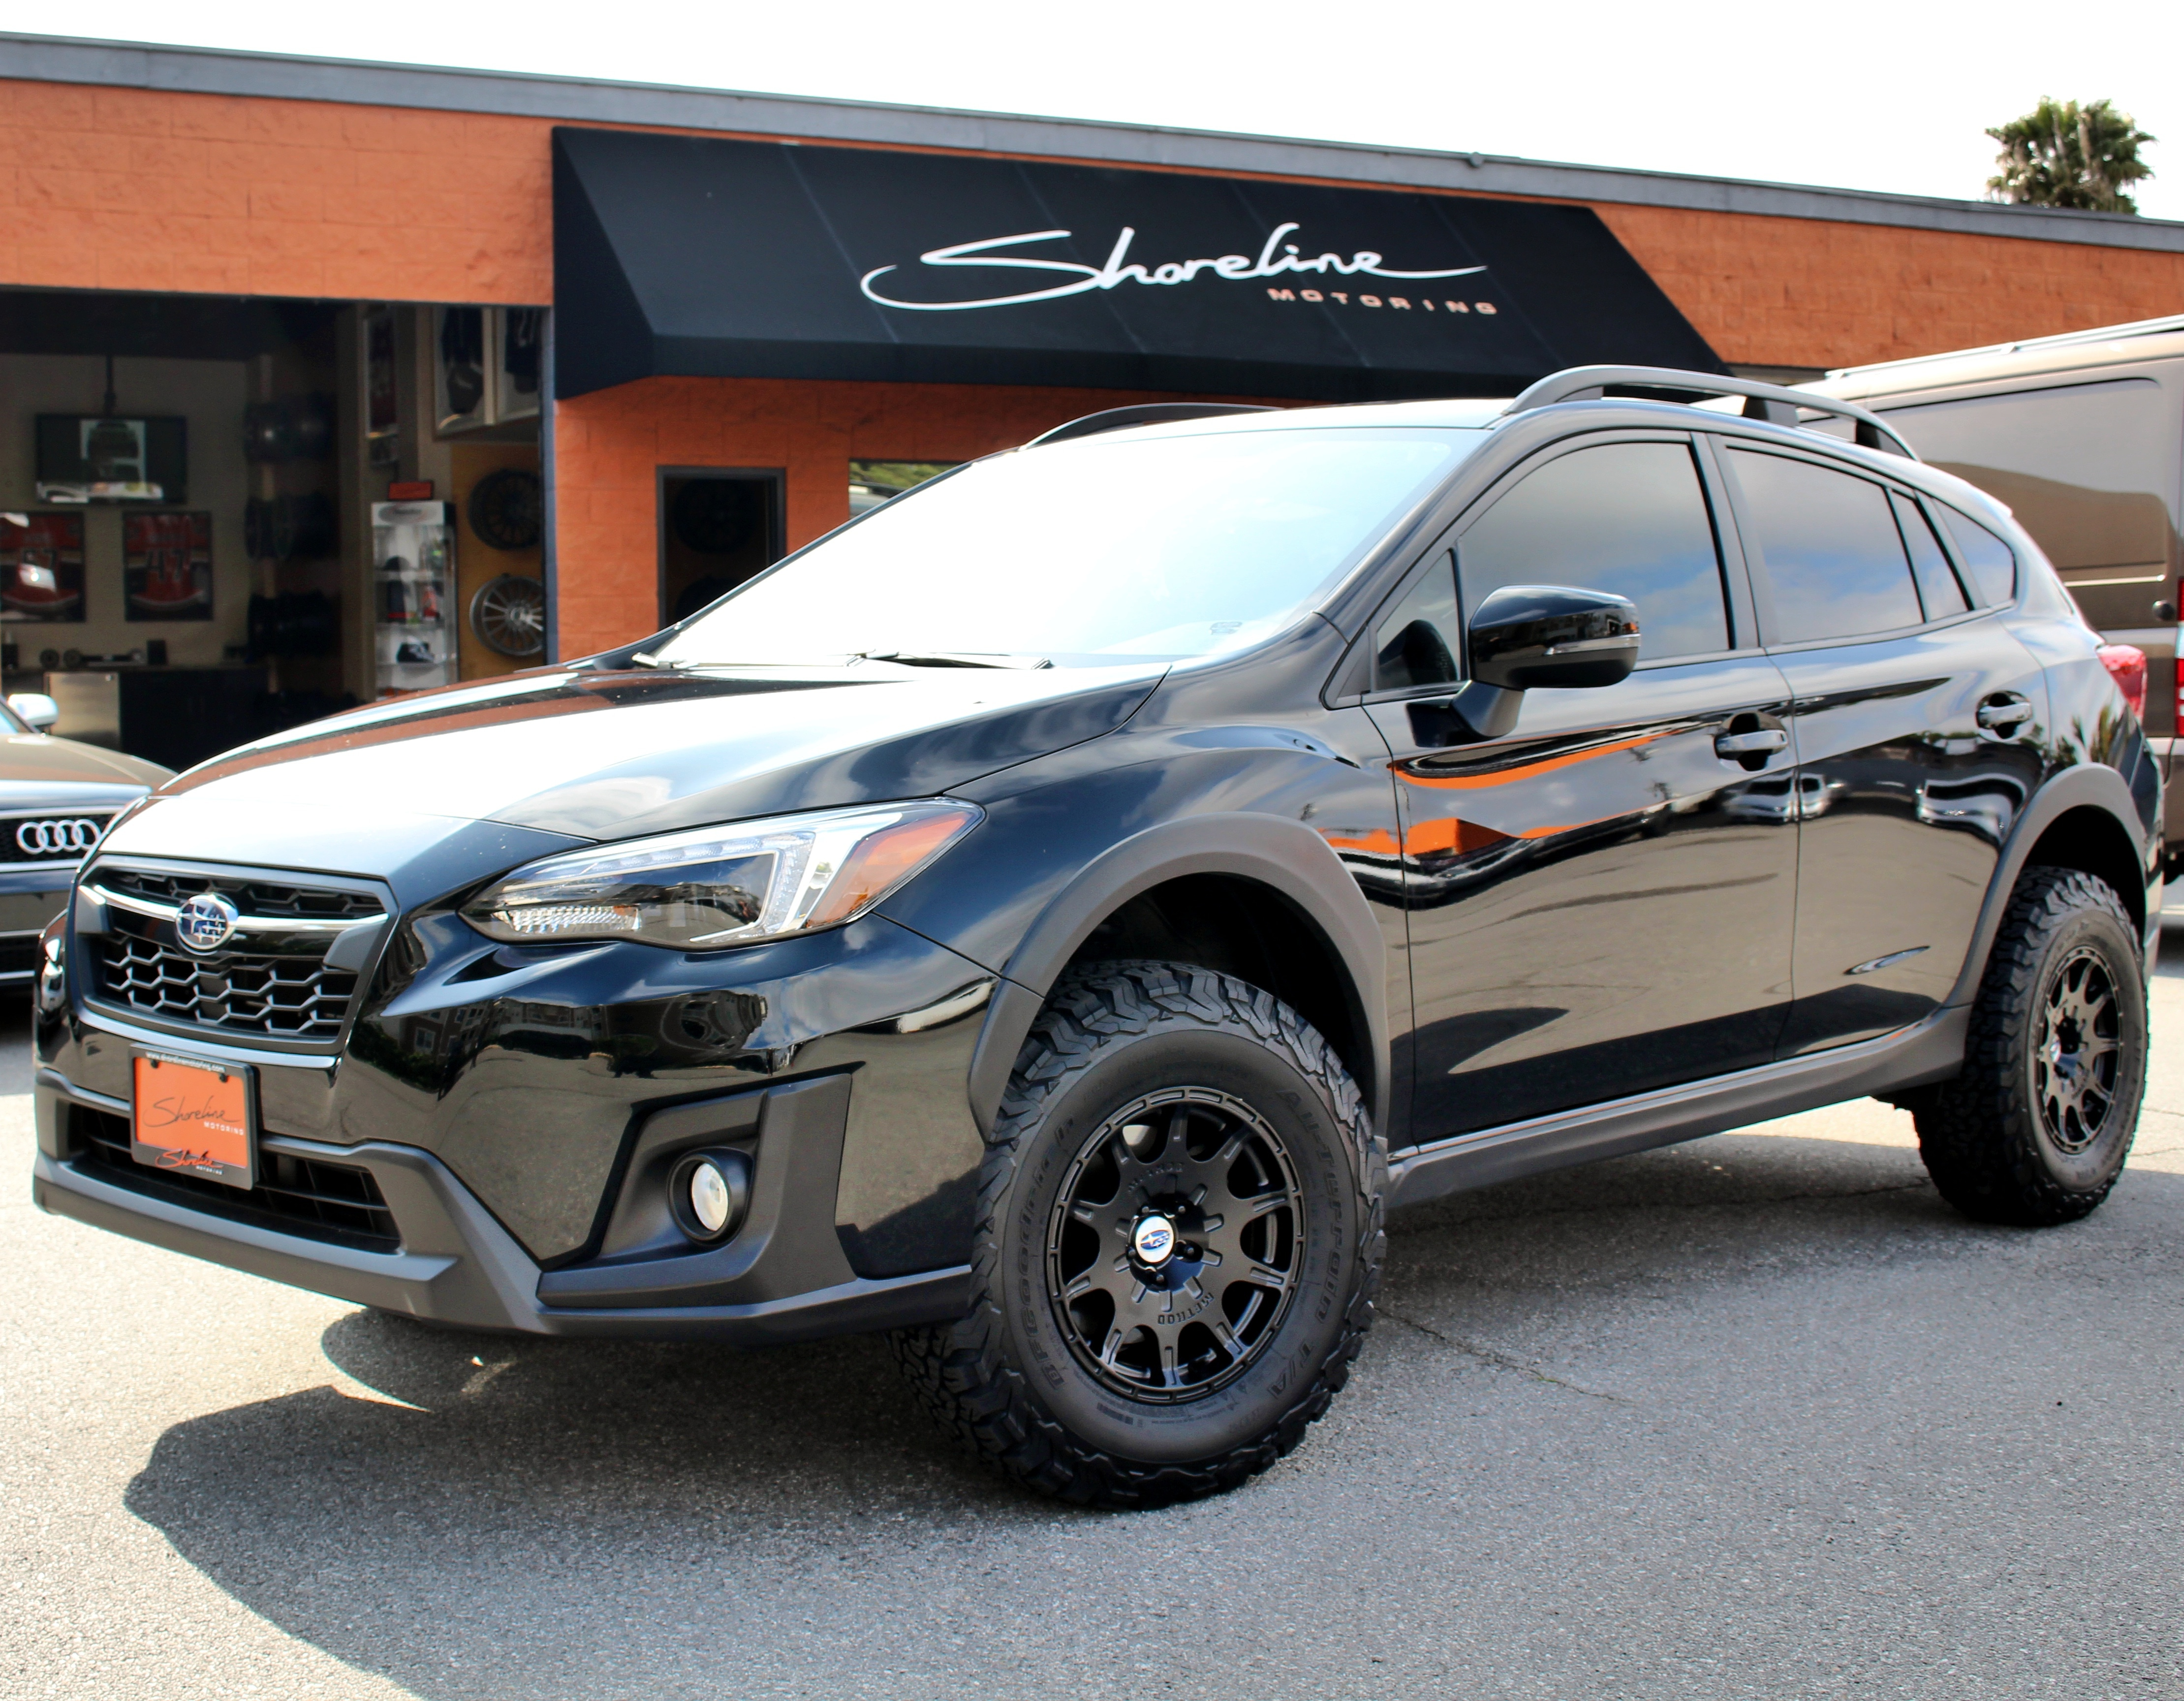 """1.5"""" LP Aventure lift kit, PedalBox, Method 502 VT Spec Rally Series wheels with KO2 BFG'S and black-out trim package for this '18 Crosstrek"""